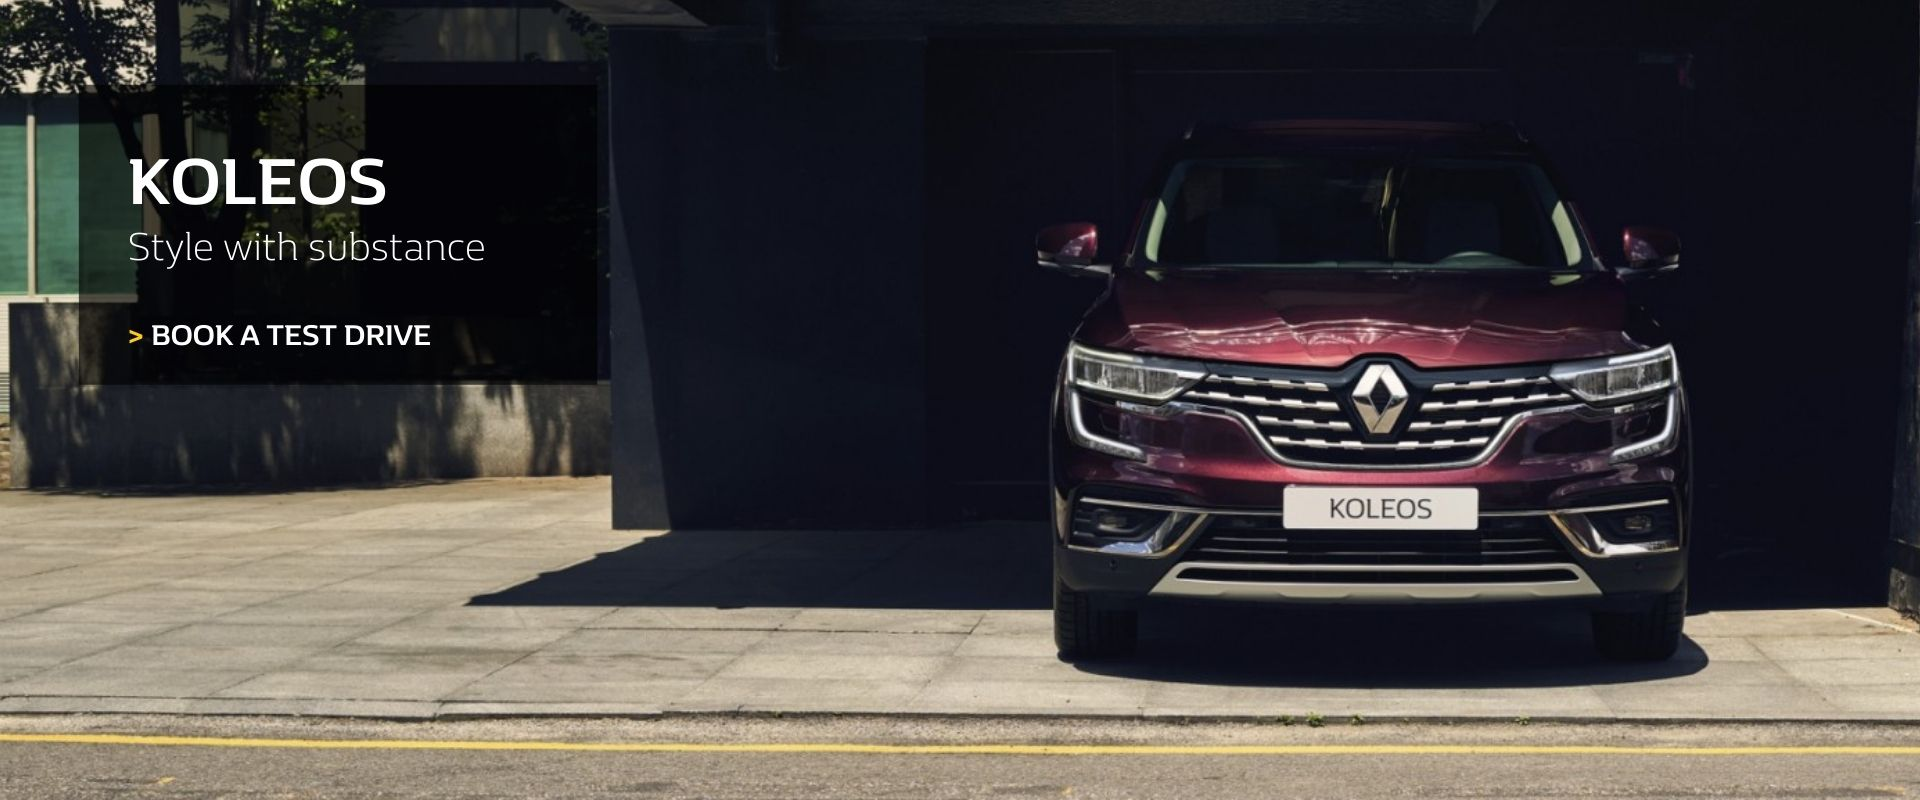 Renault Koleos - Style with substance -  Book a test drive today at DC Motors Renault